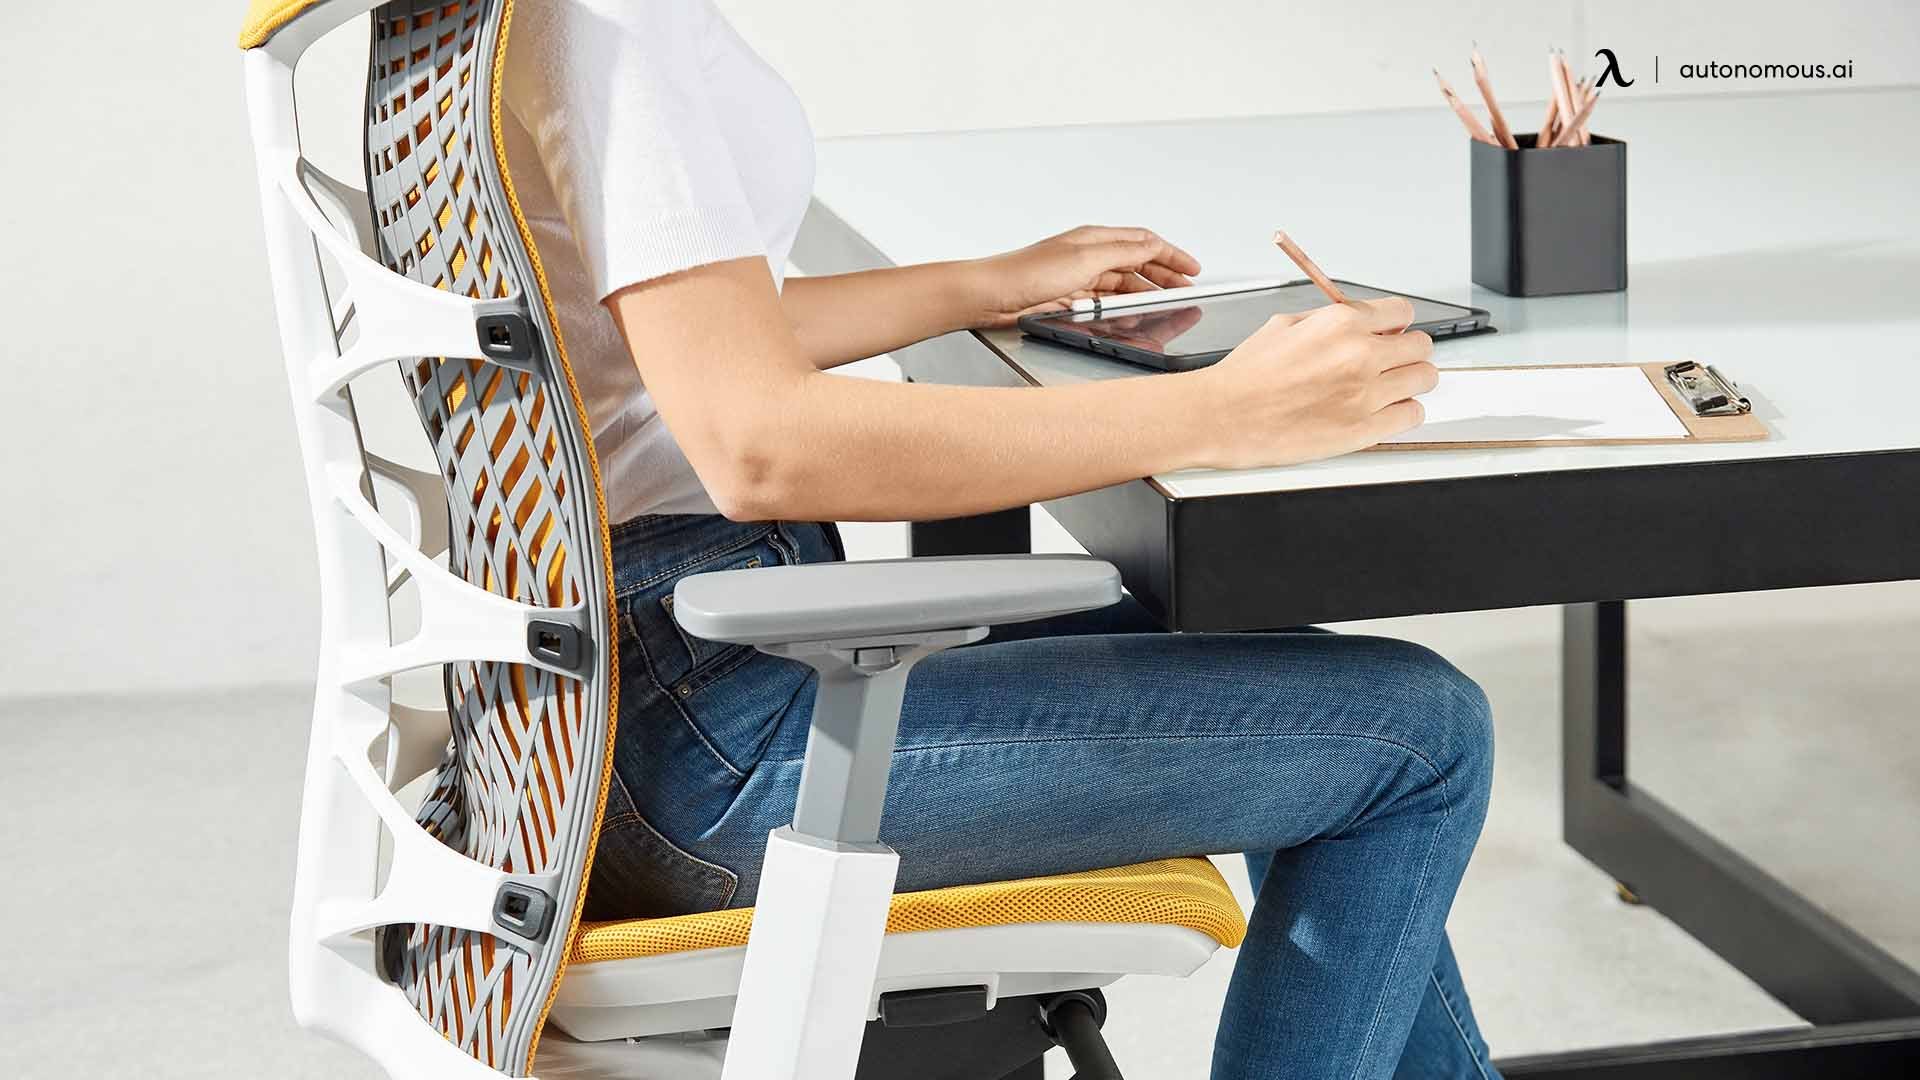 Why I Need an Ergonomic Chair for Upper Back Pain